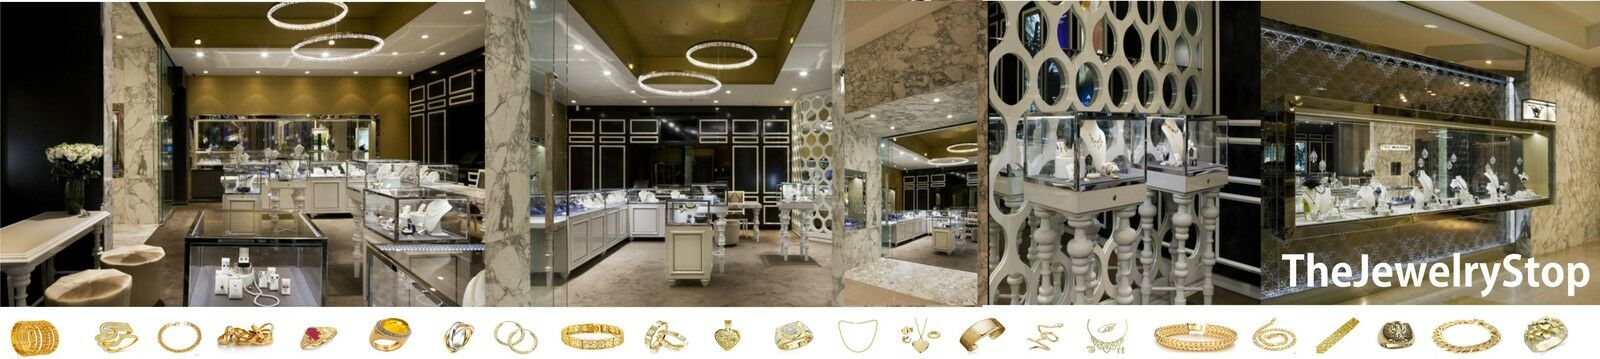 The Jewelry Stop